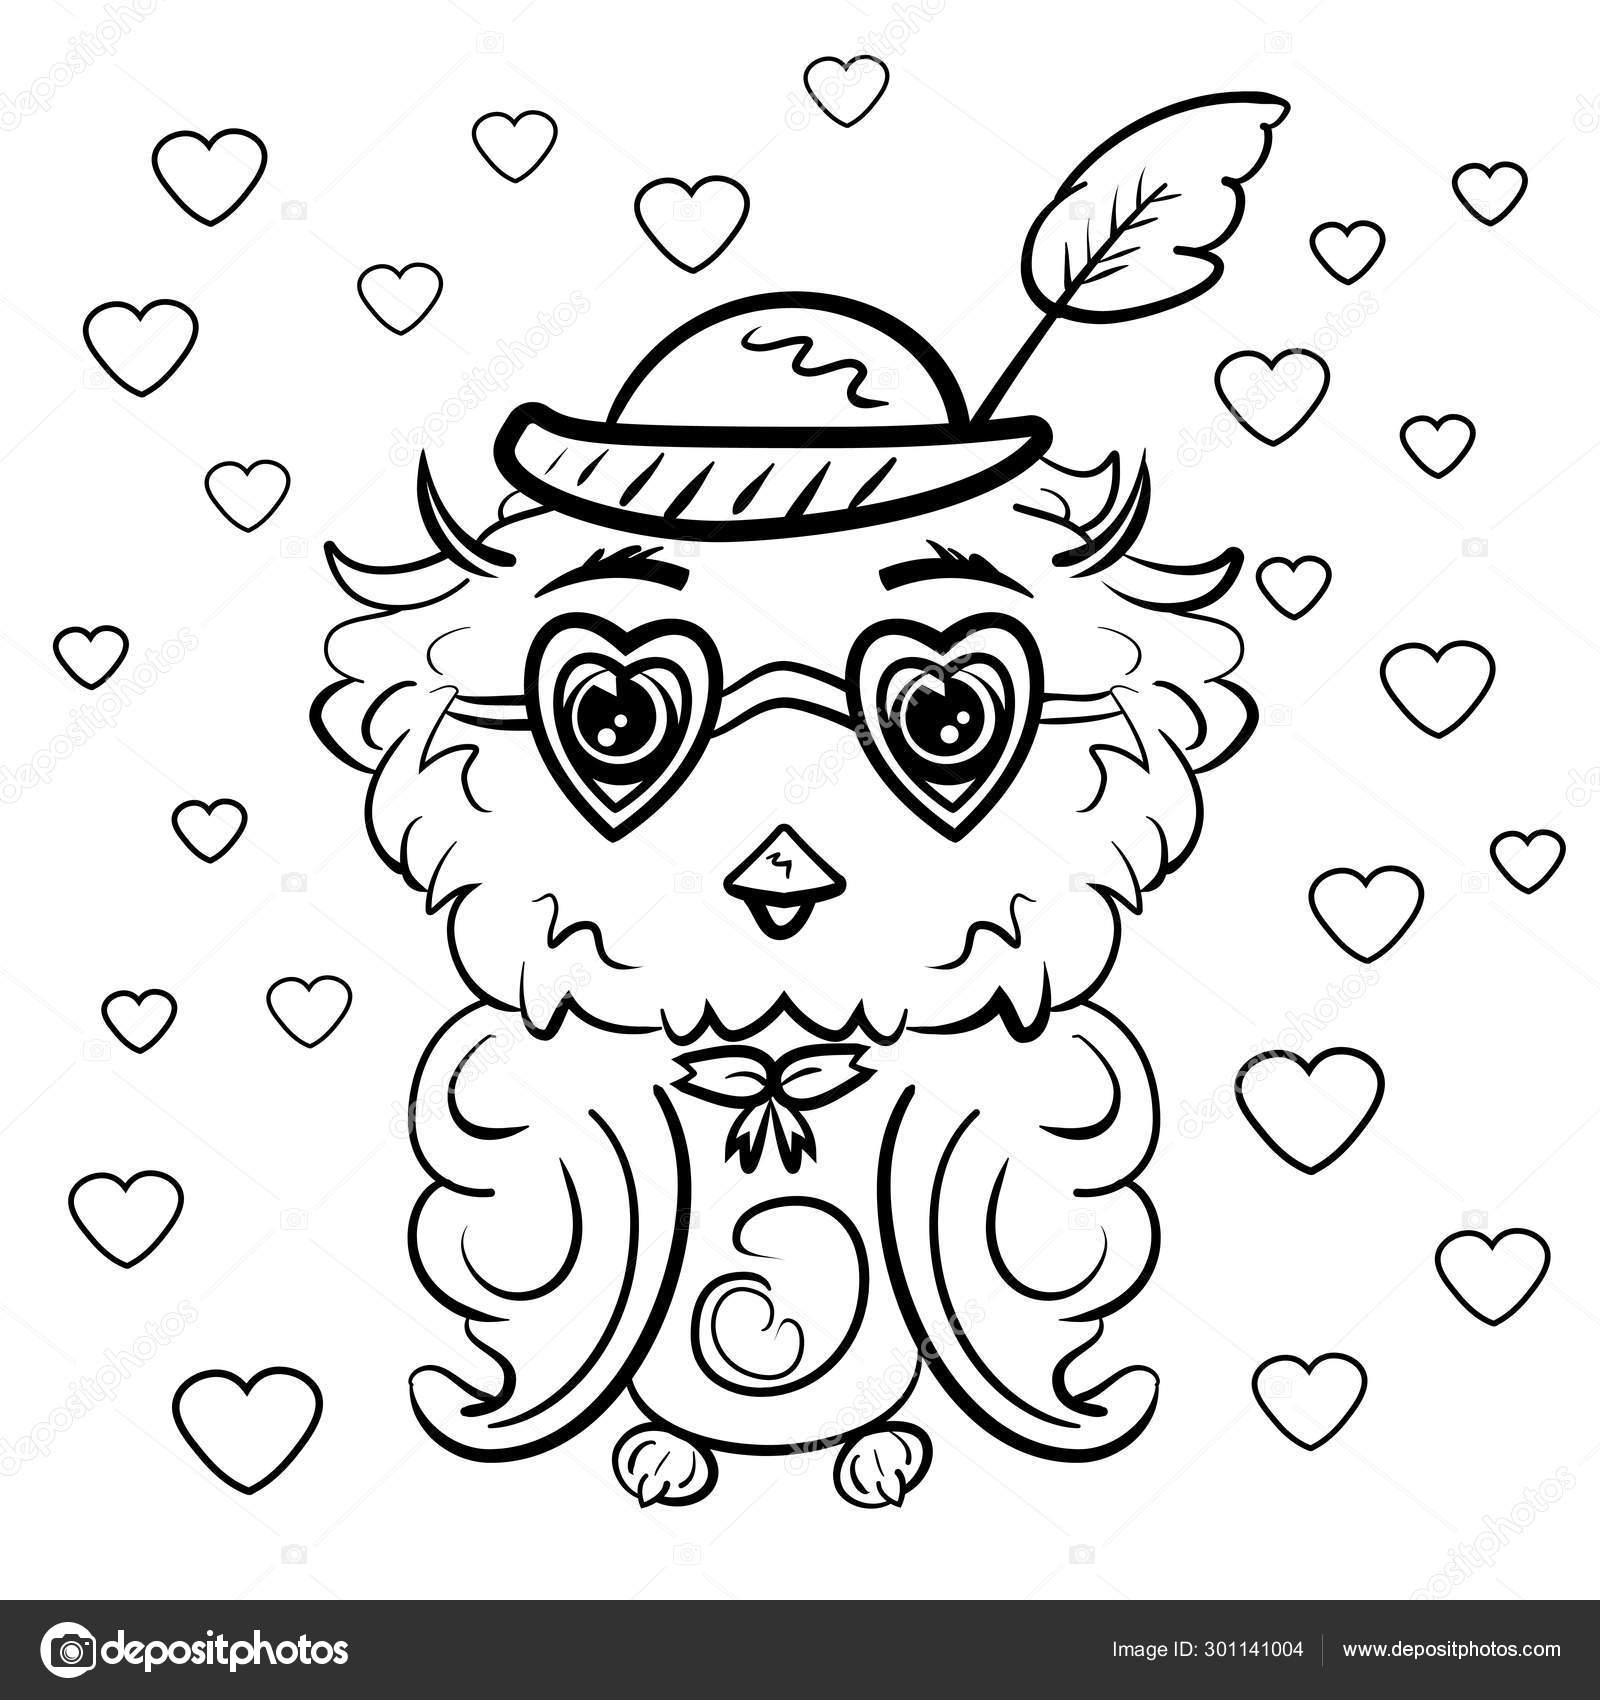 Cute Owl Valentine's Day Coloring Page - Free Printable | No, YOU ... | 1700x1600